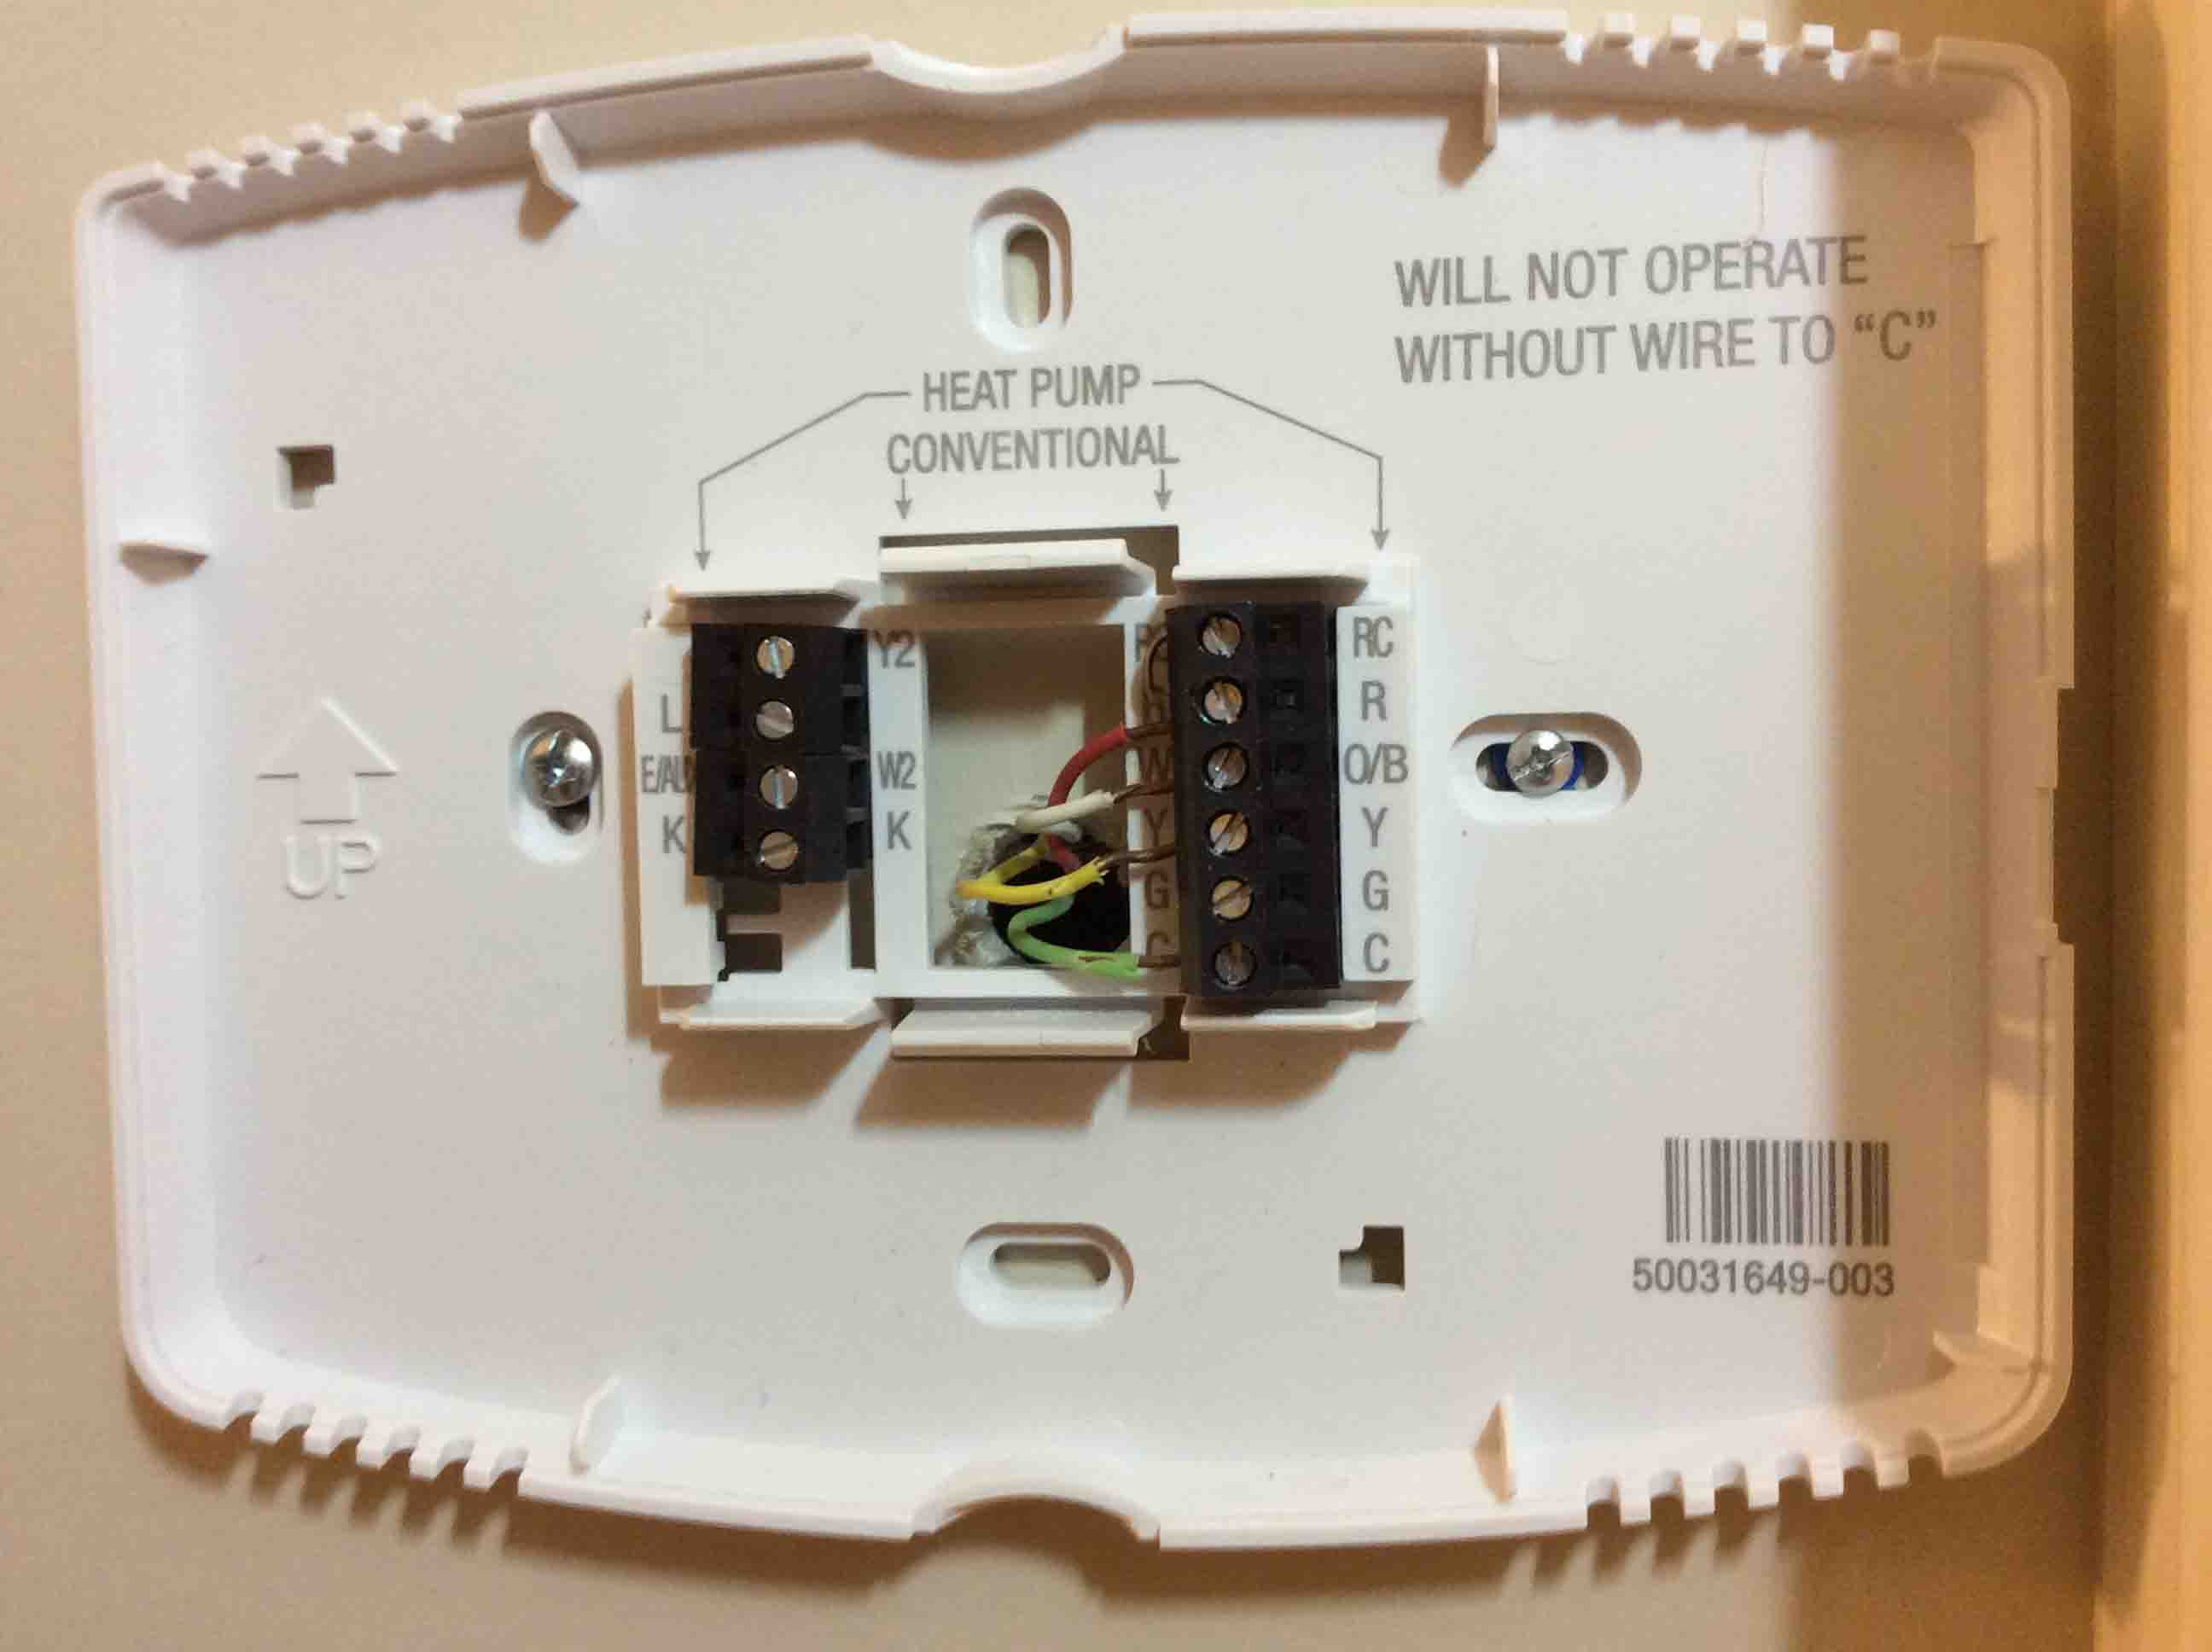 HoneywellWiFiThermostatWallPlateTypicalWiring_001 honeywell smart thermostat wiring instructions rth9580wf tom's Honeywell Thermostat Models Manual at mifinder.co